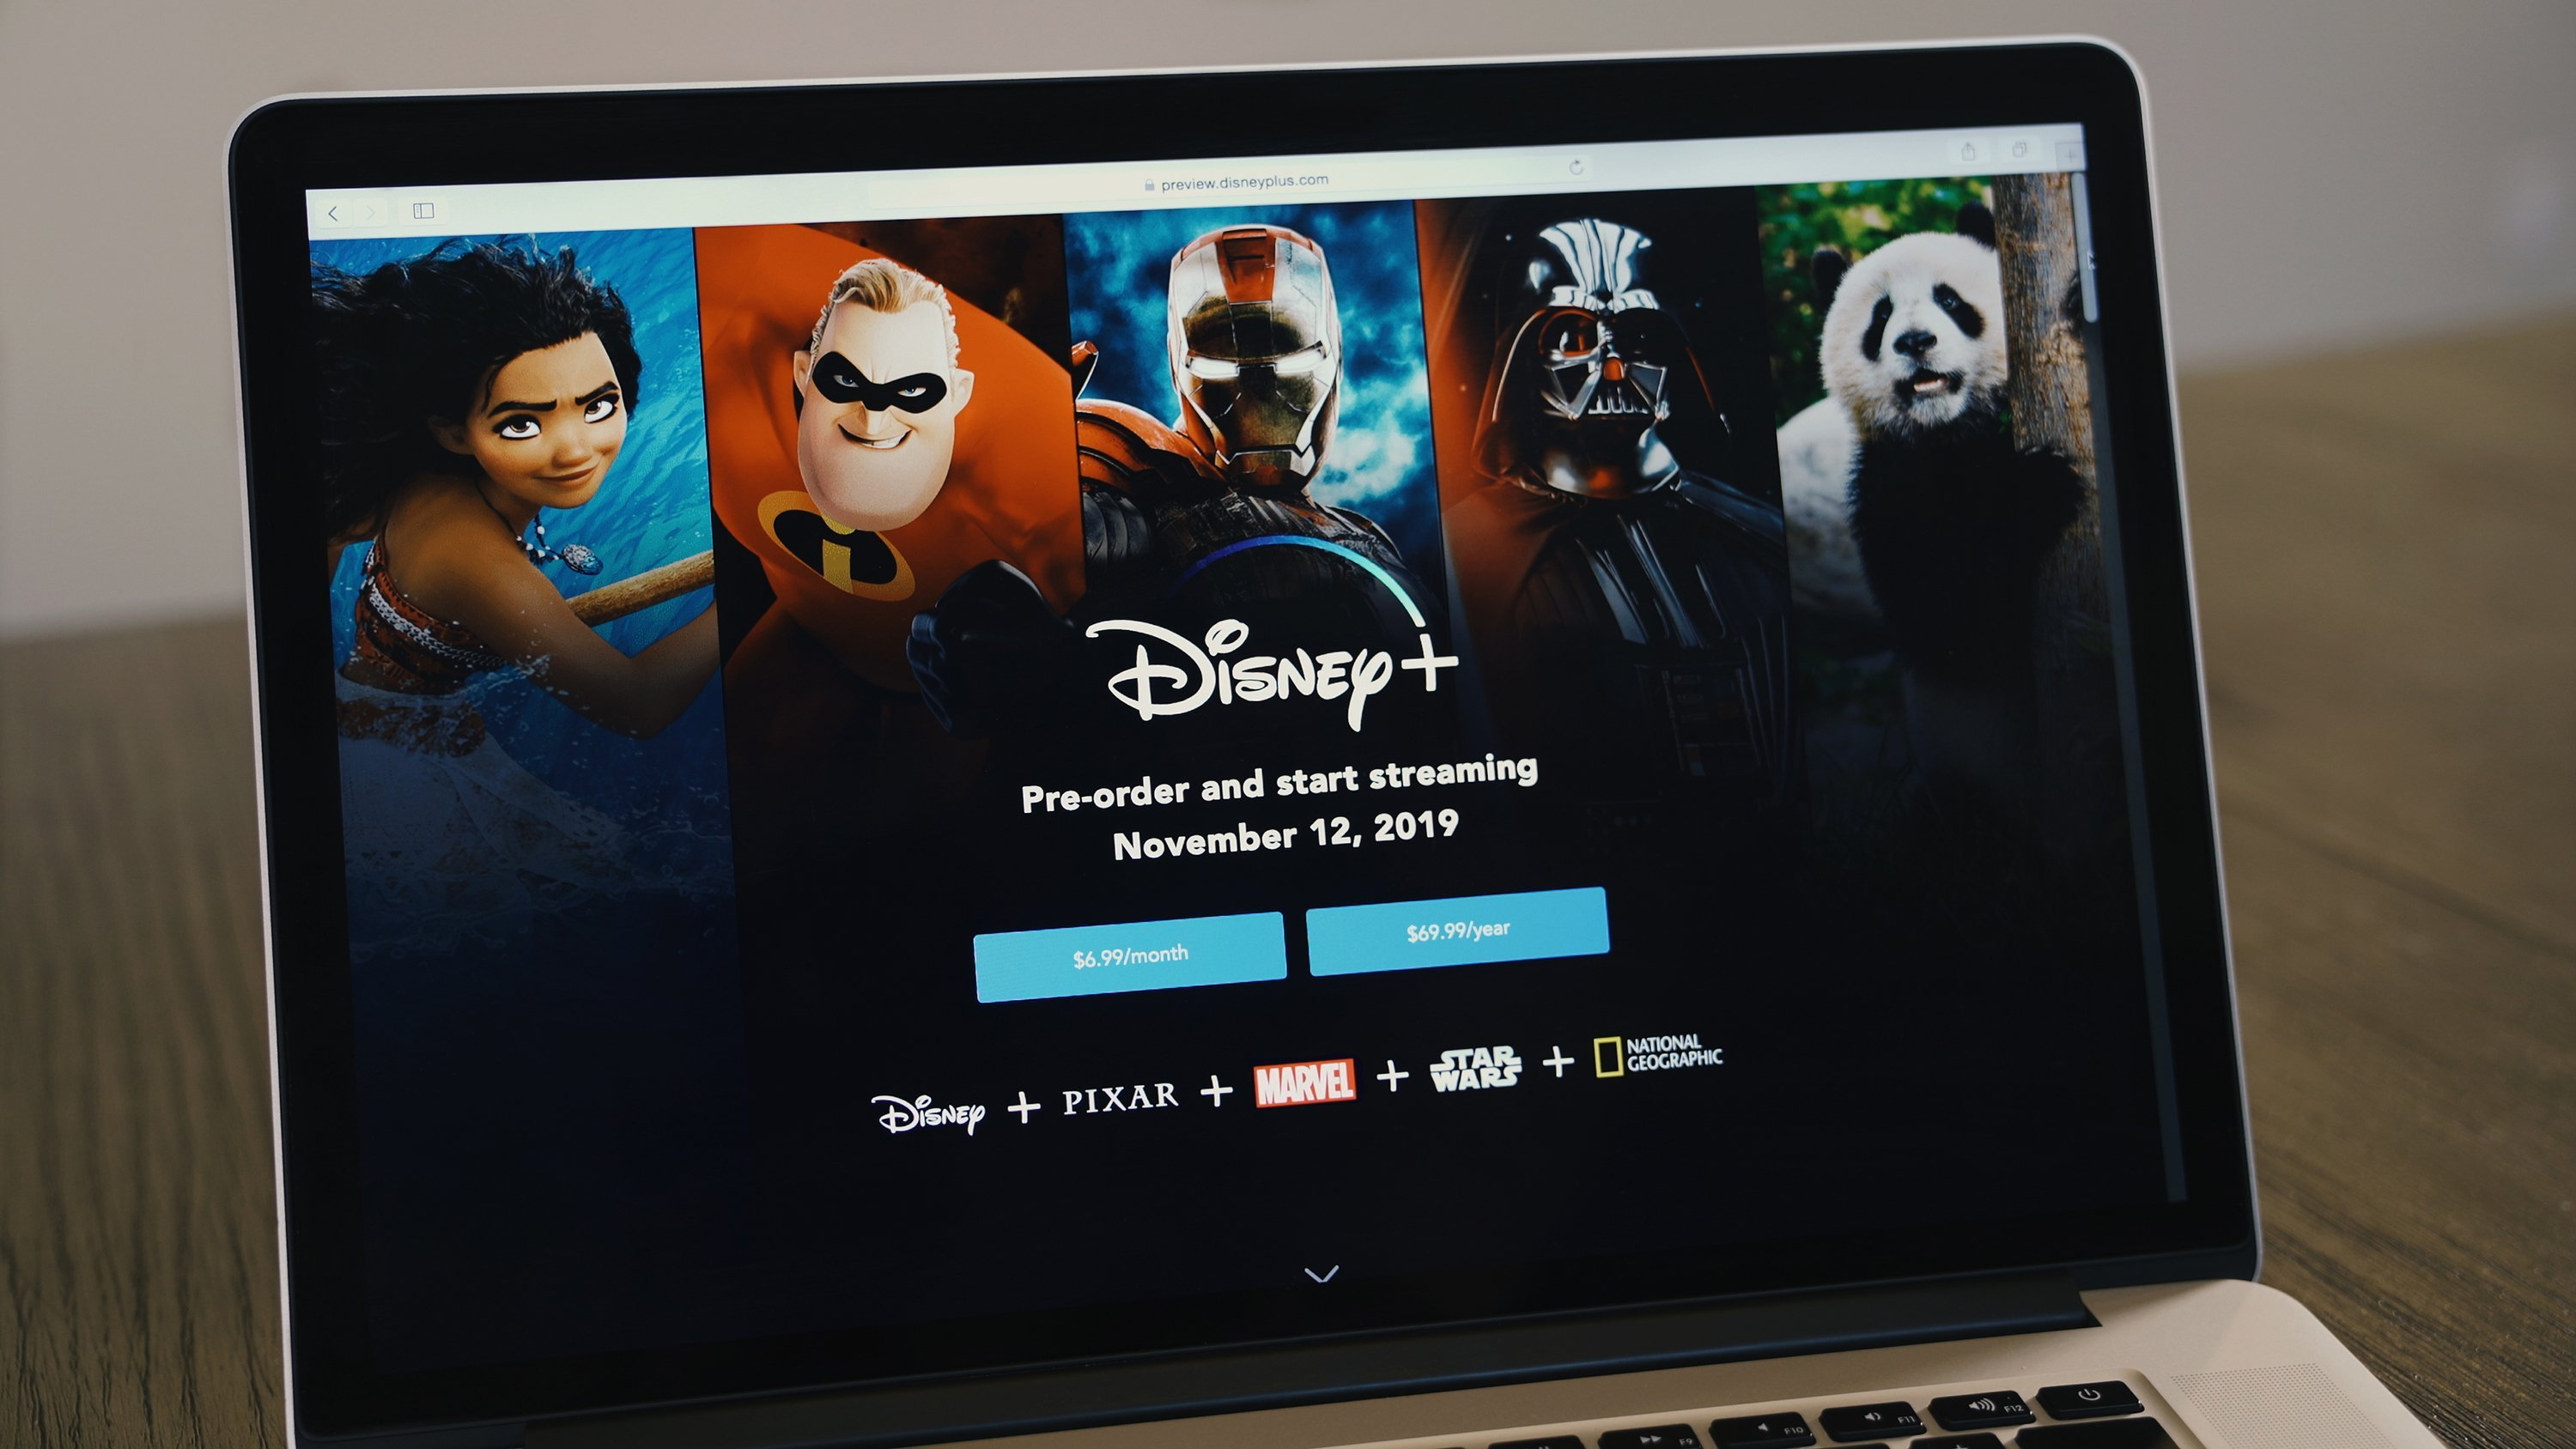 Disney+ warns viewers that old movies may have 'outdated cultural depictions'